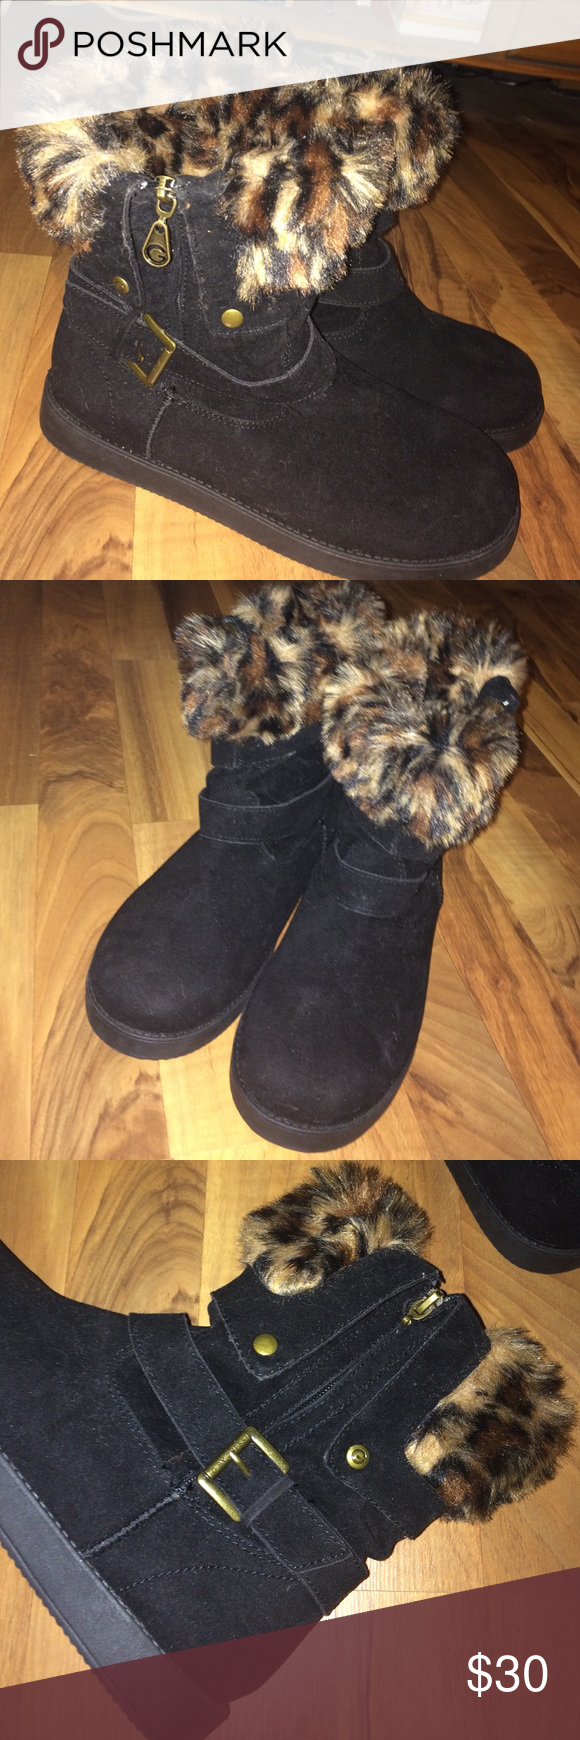 SALE! 🆕 Black & faux fur GUESS booties Super cute black and faux leopard fur lining with buckle detail and zipper entry. They've never been worn but somehow the zipper pull on the left boot is missing, doesn't affect the wear at all, you can still zip it up without a problem. G by Guess. Size 7. G by Guess Shoes Ankle Boots & Booties